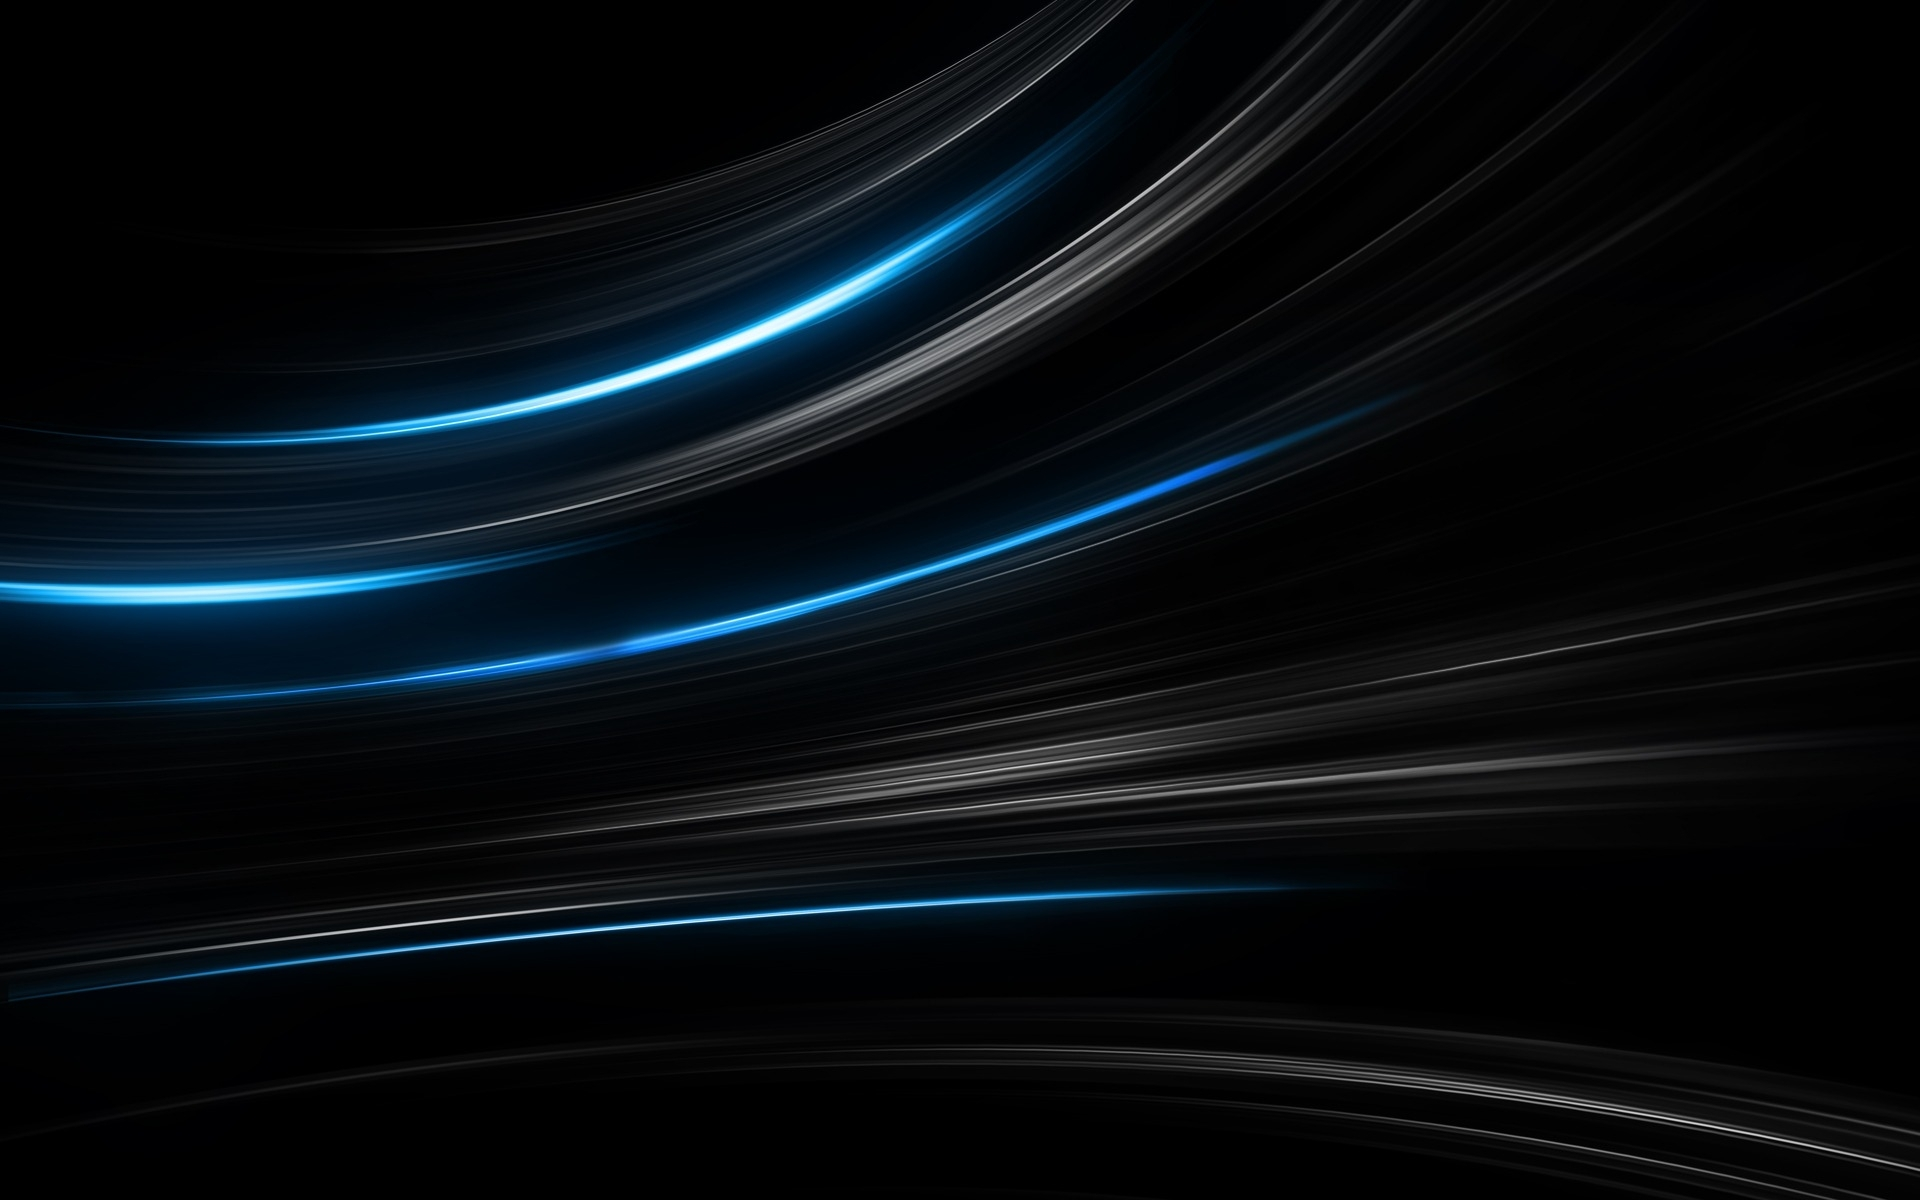 black blue wallpaper abstract 3d wallpapers for free download about